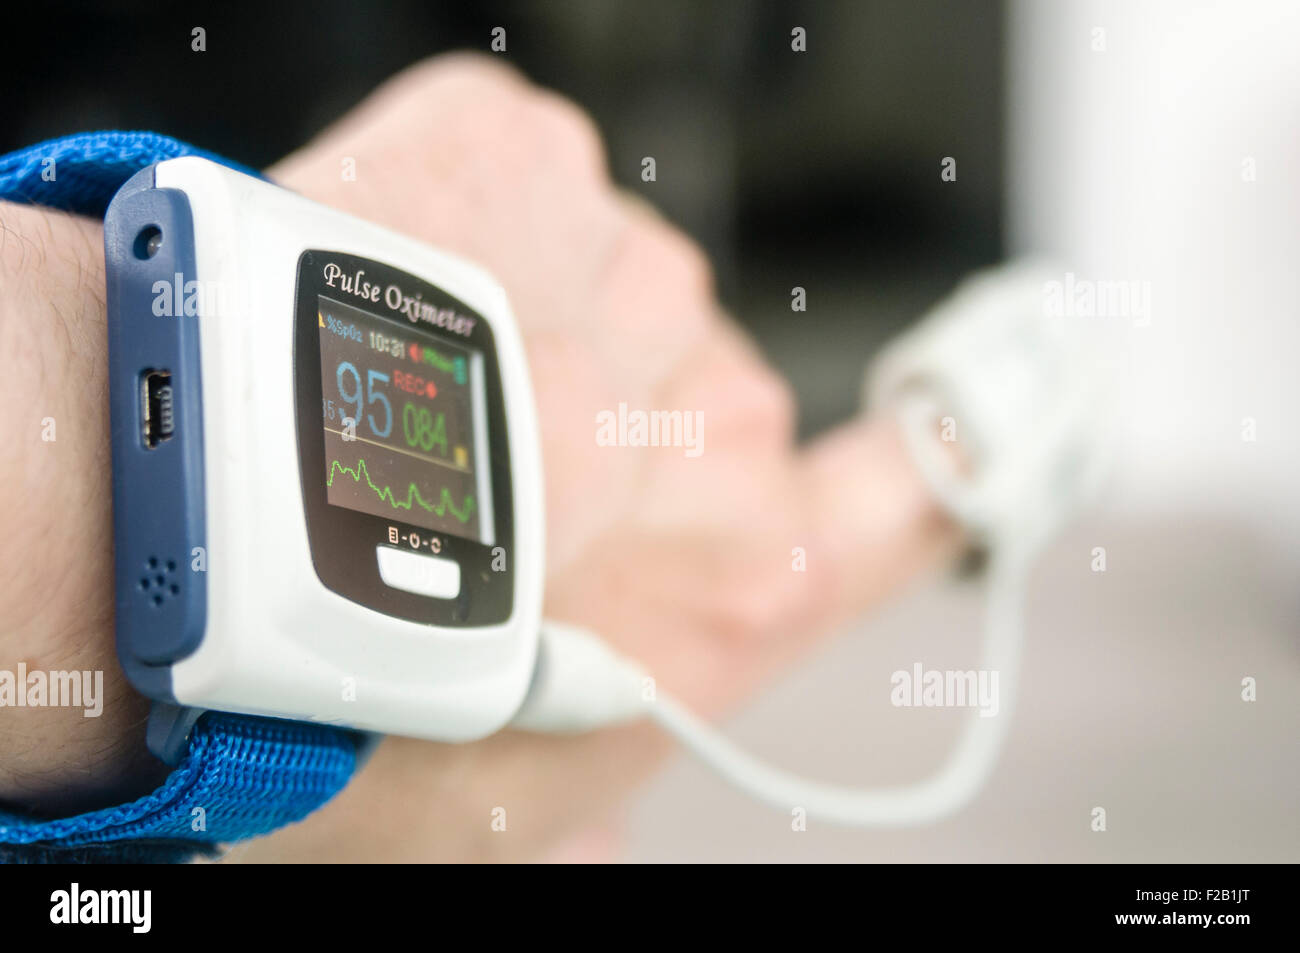 Pulse oxymeter being worn by a male patient to measure his blood oxygen saturation level - Stock Image